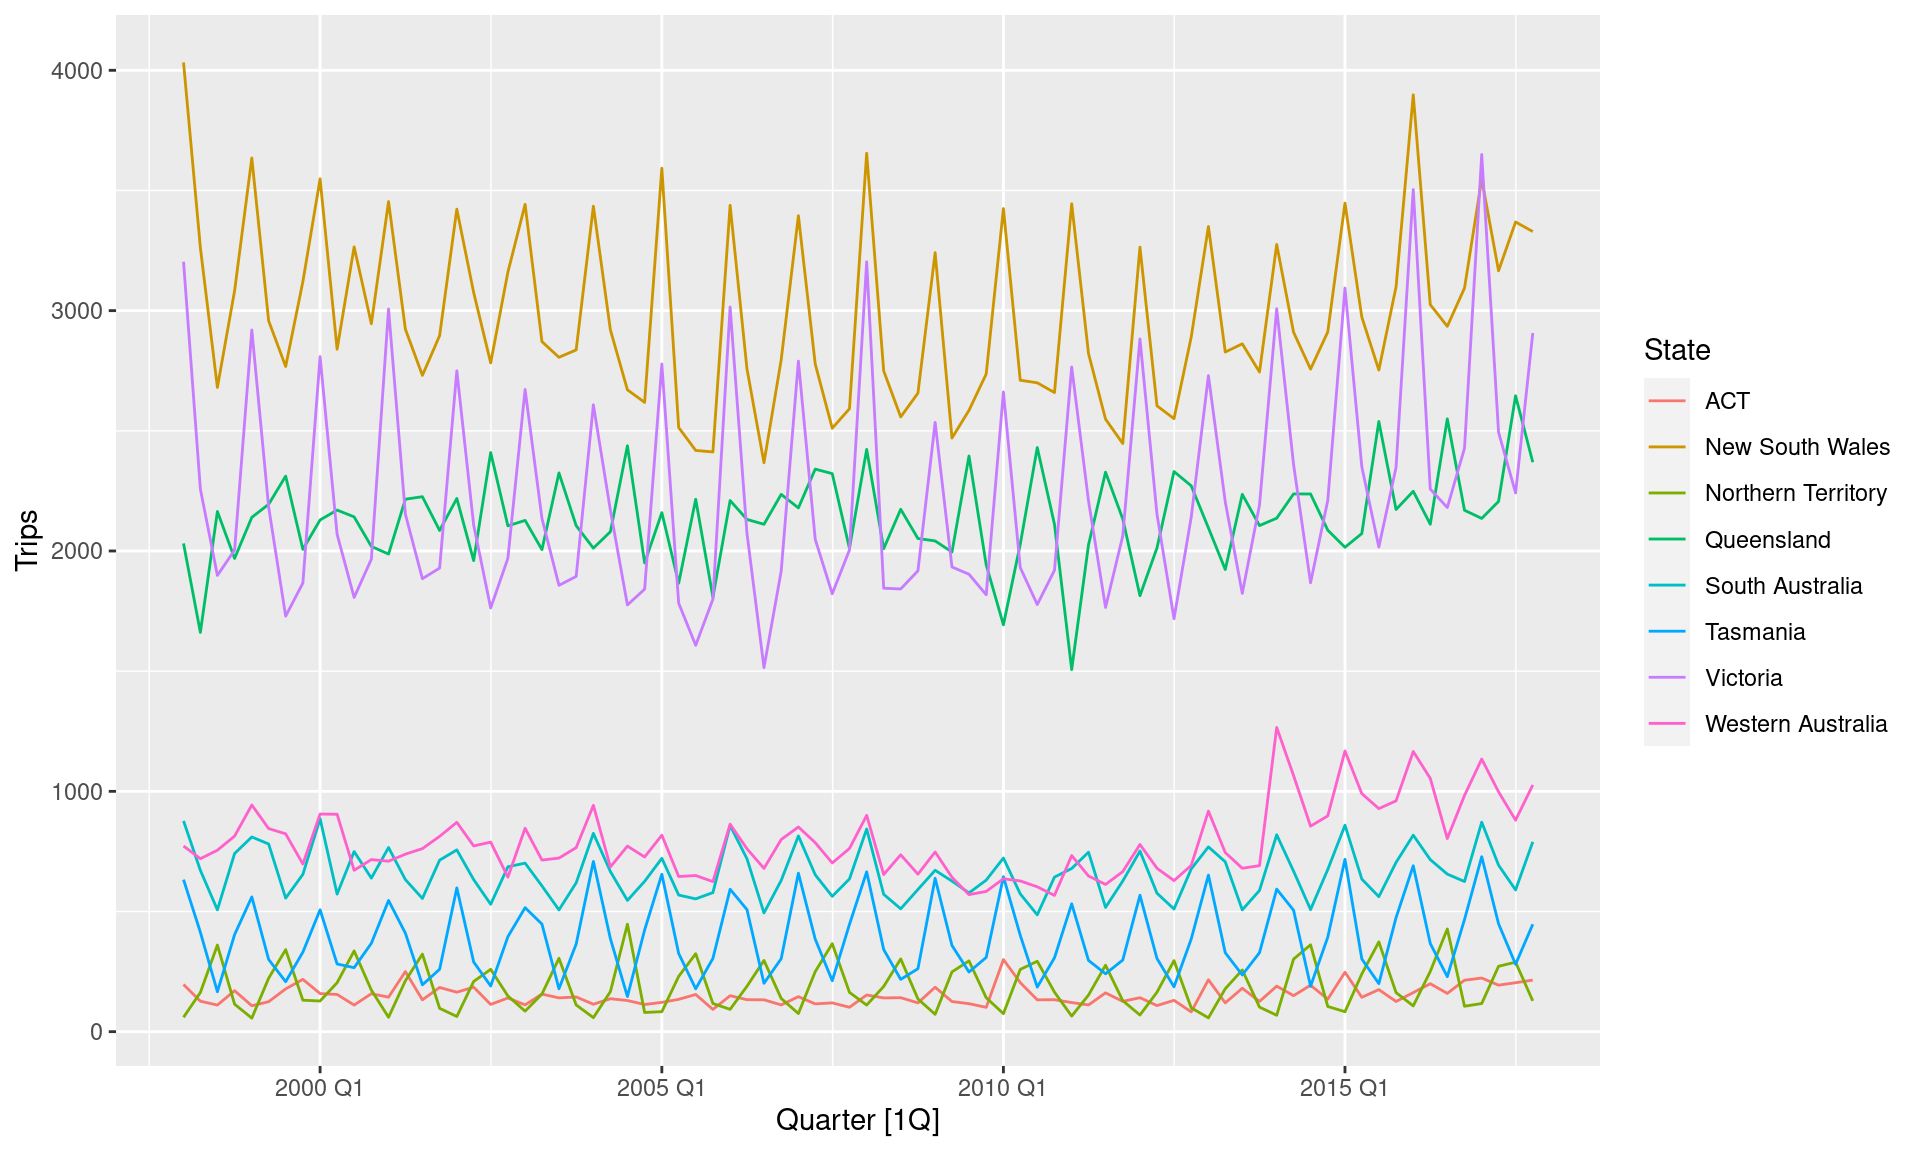 Time series graphics using feasts